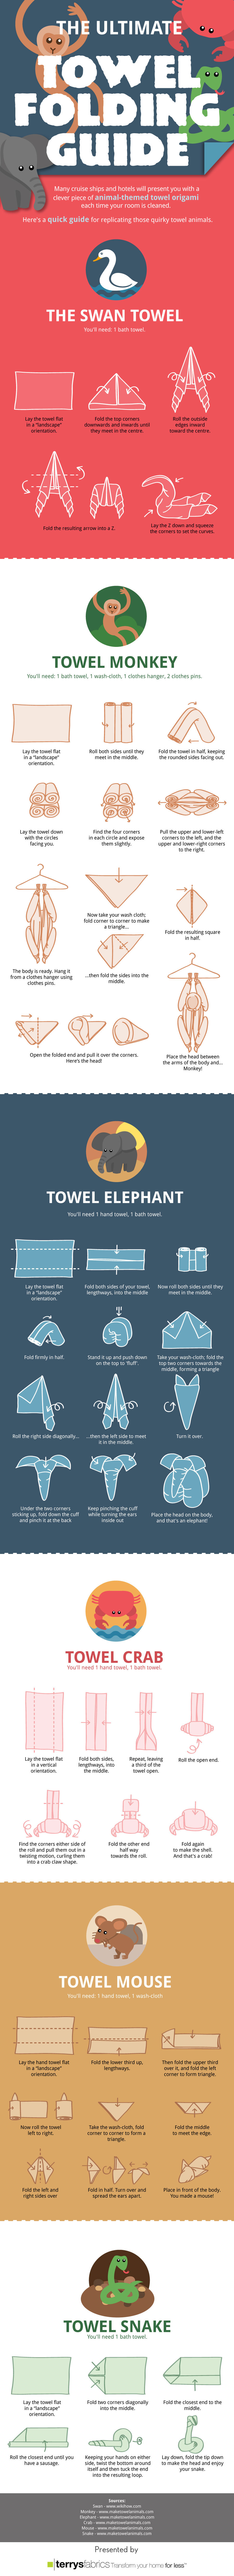 4 the-ultimate-towel-folding-guide